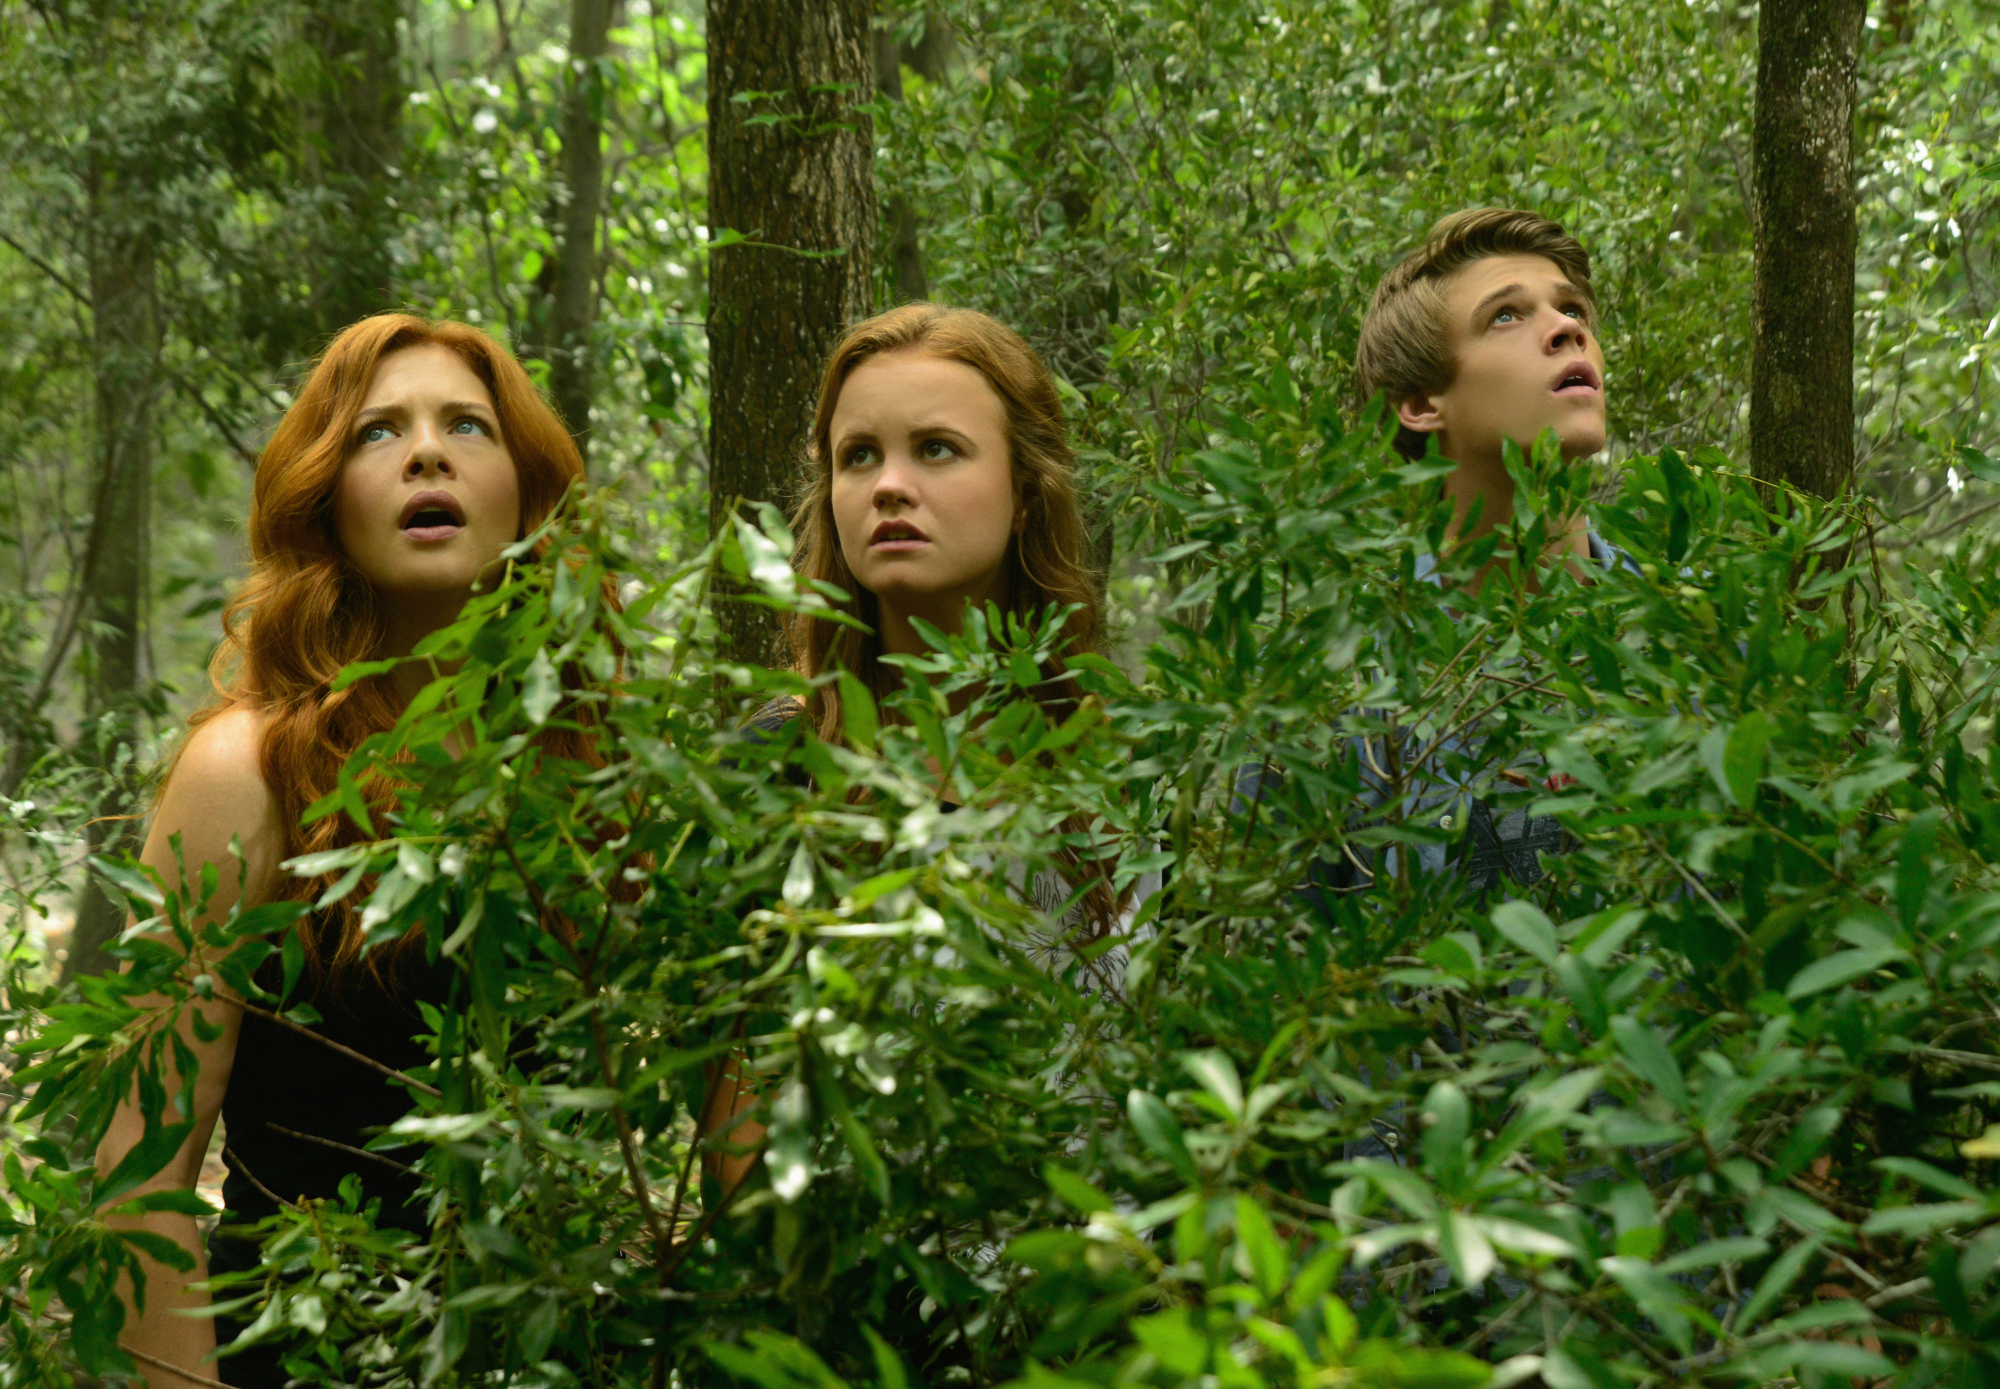 Rachelle Lefevre as Julia Shumway, Mackenzie Lintz as Norrie, and Colin Ford as Joe McAlister.